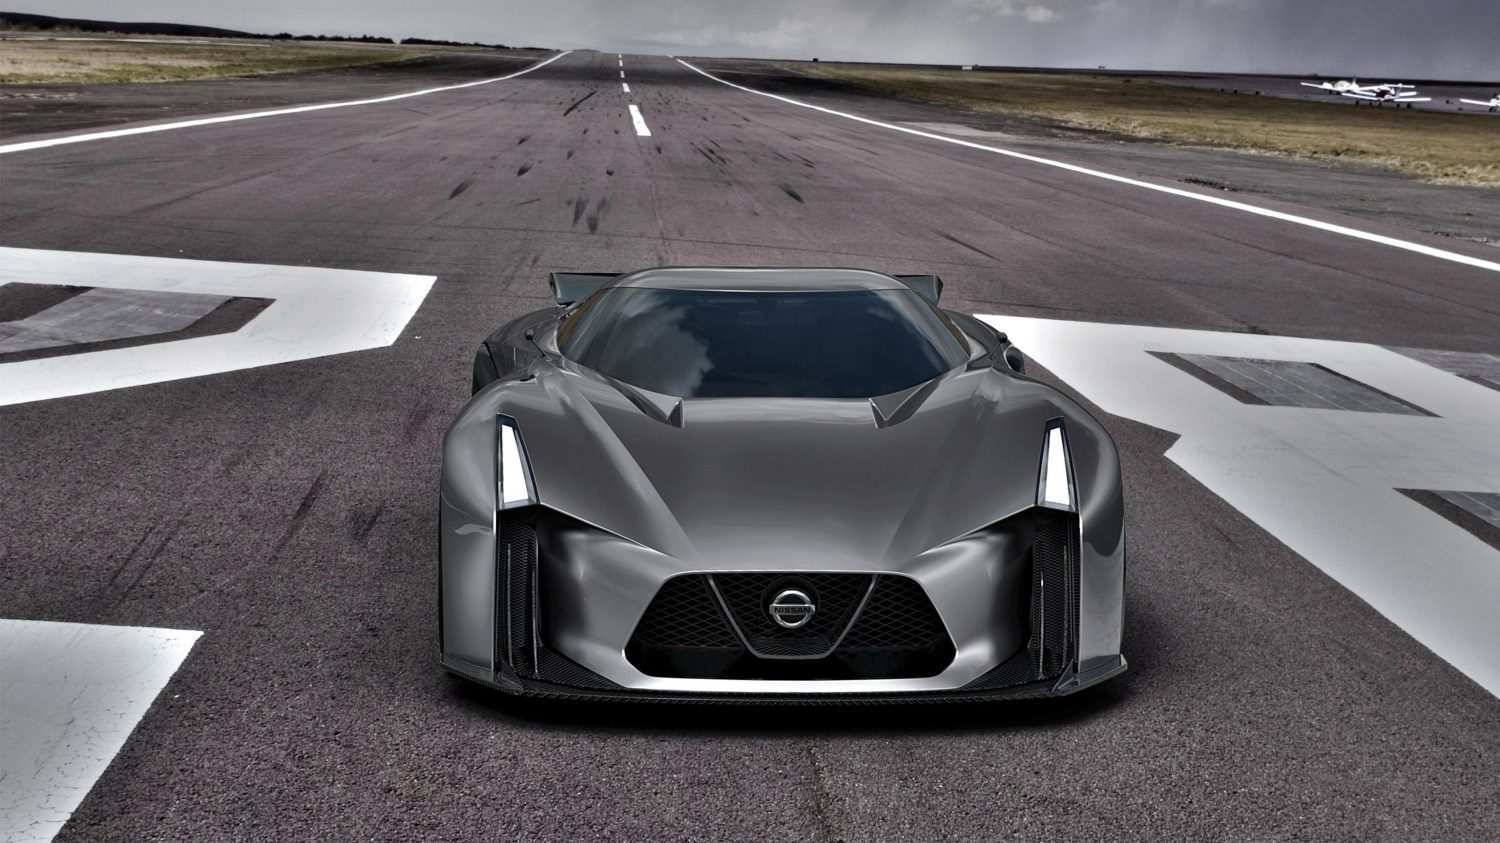 91 A 2020 Nissan Vision Gran Turismo Redesign And Review